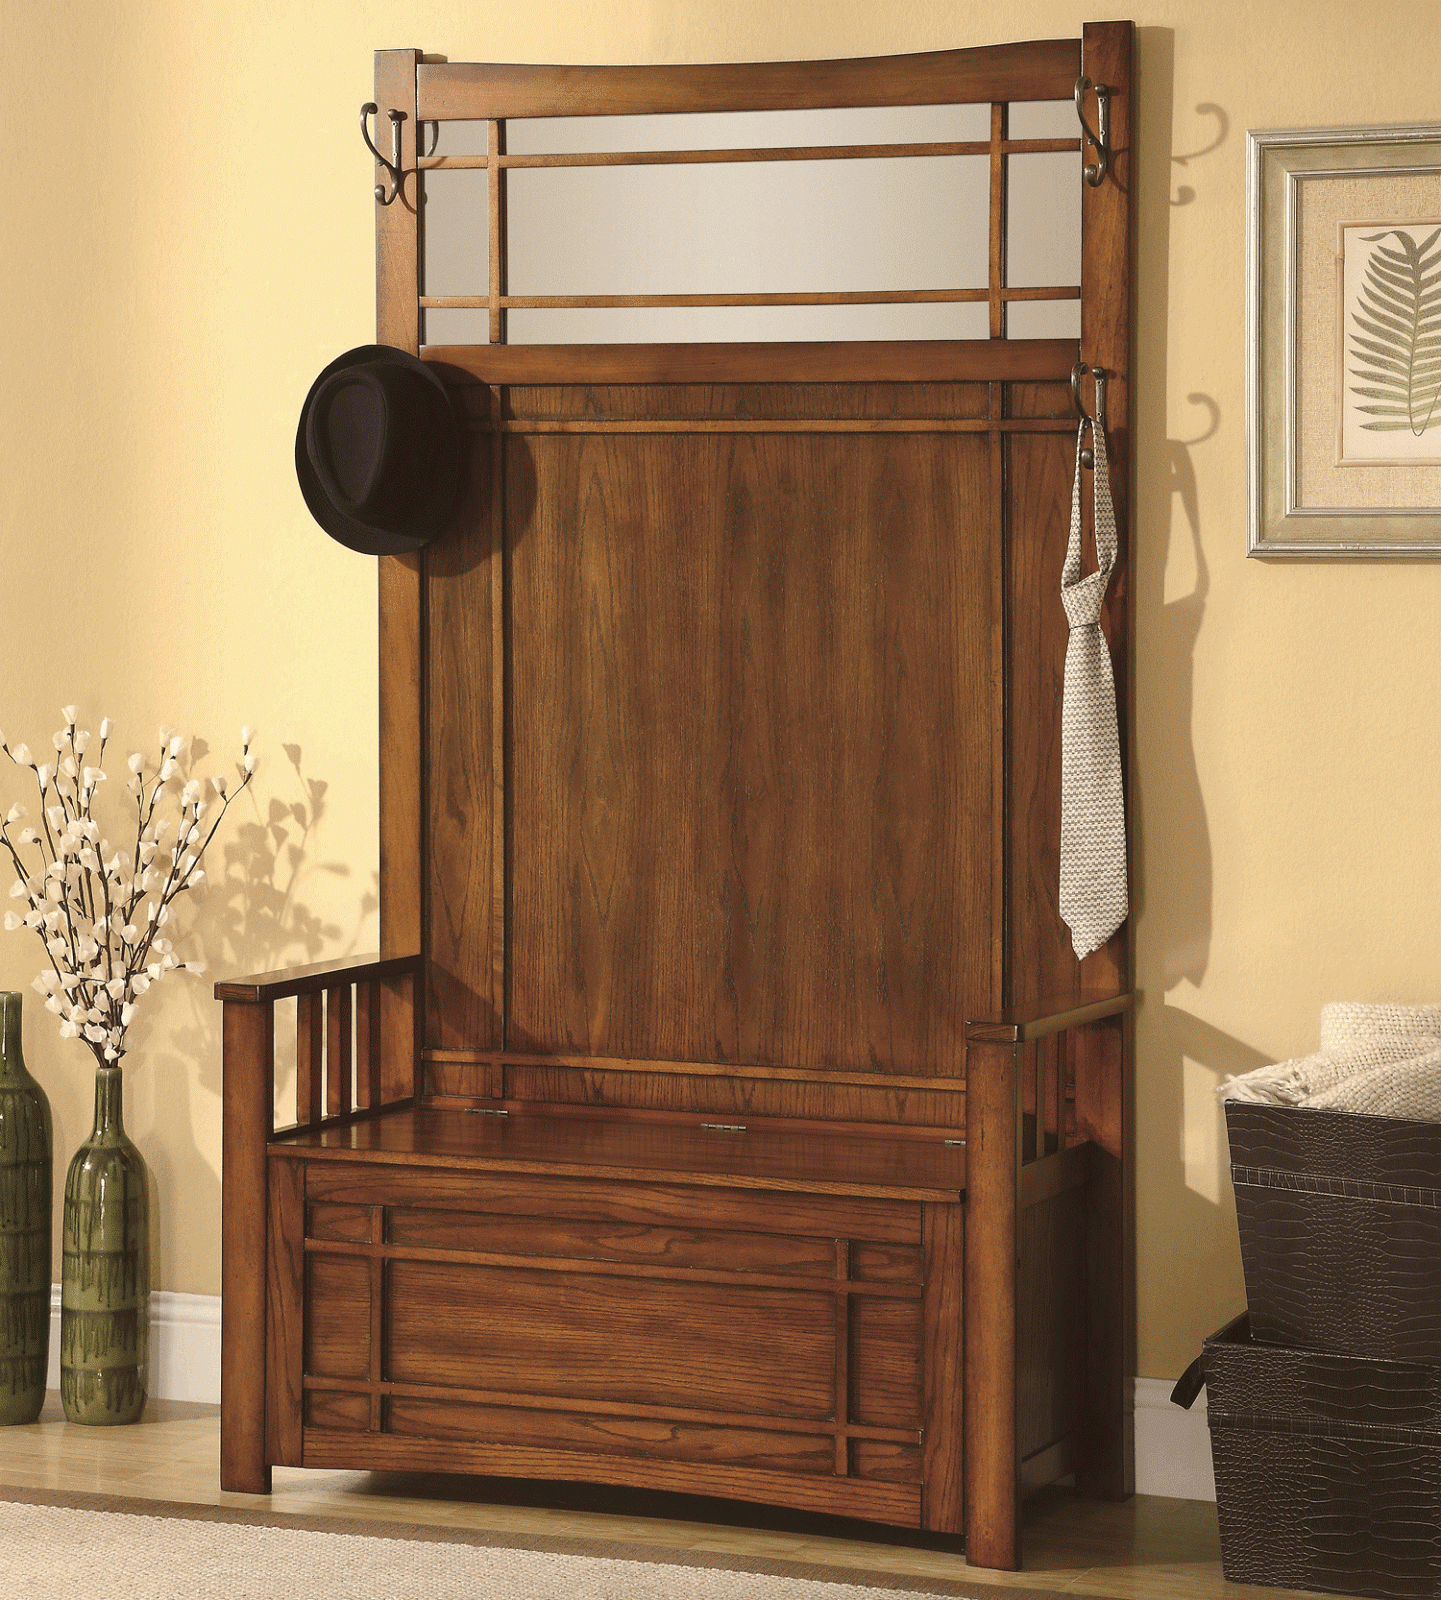 Simple Review About Living Room Furniture Entryway Storage Bench With Coat Rack